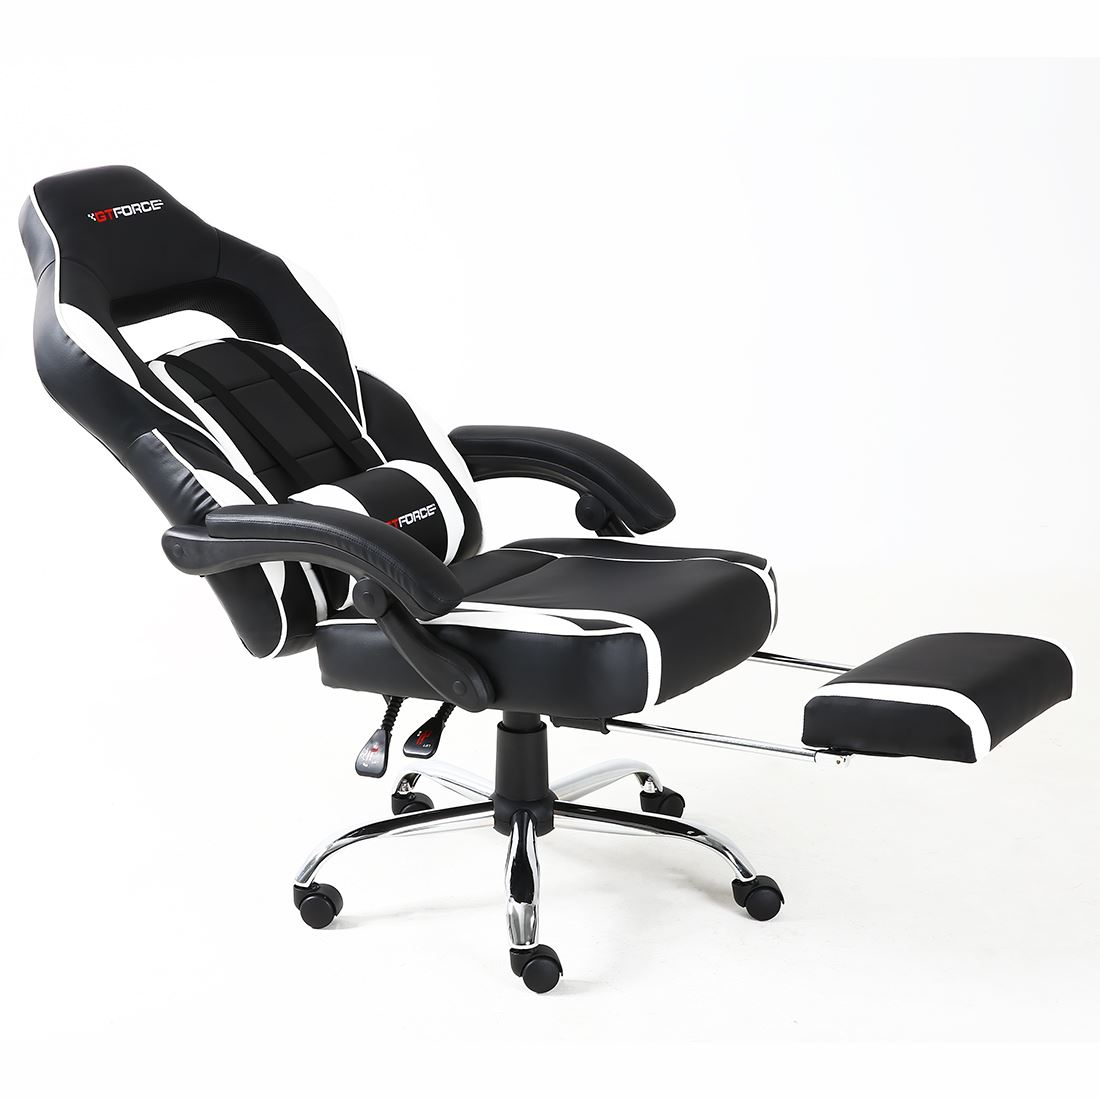 Gtforce Pace Reclining Leather Sports Racing Office Desk